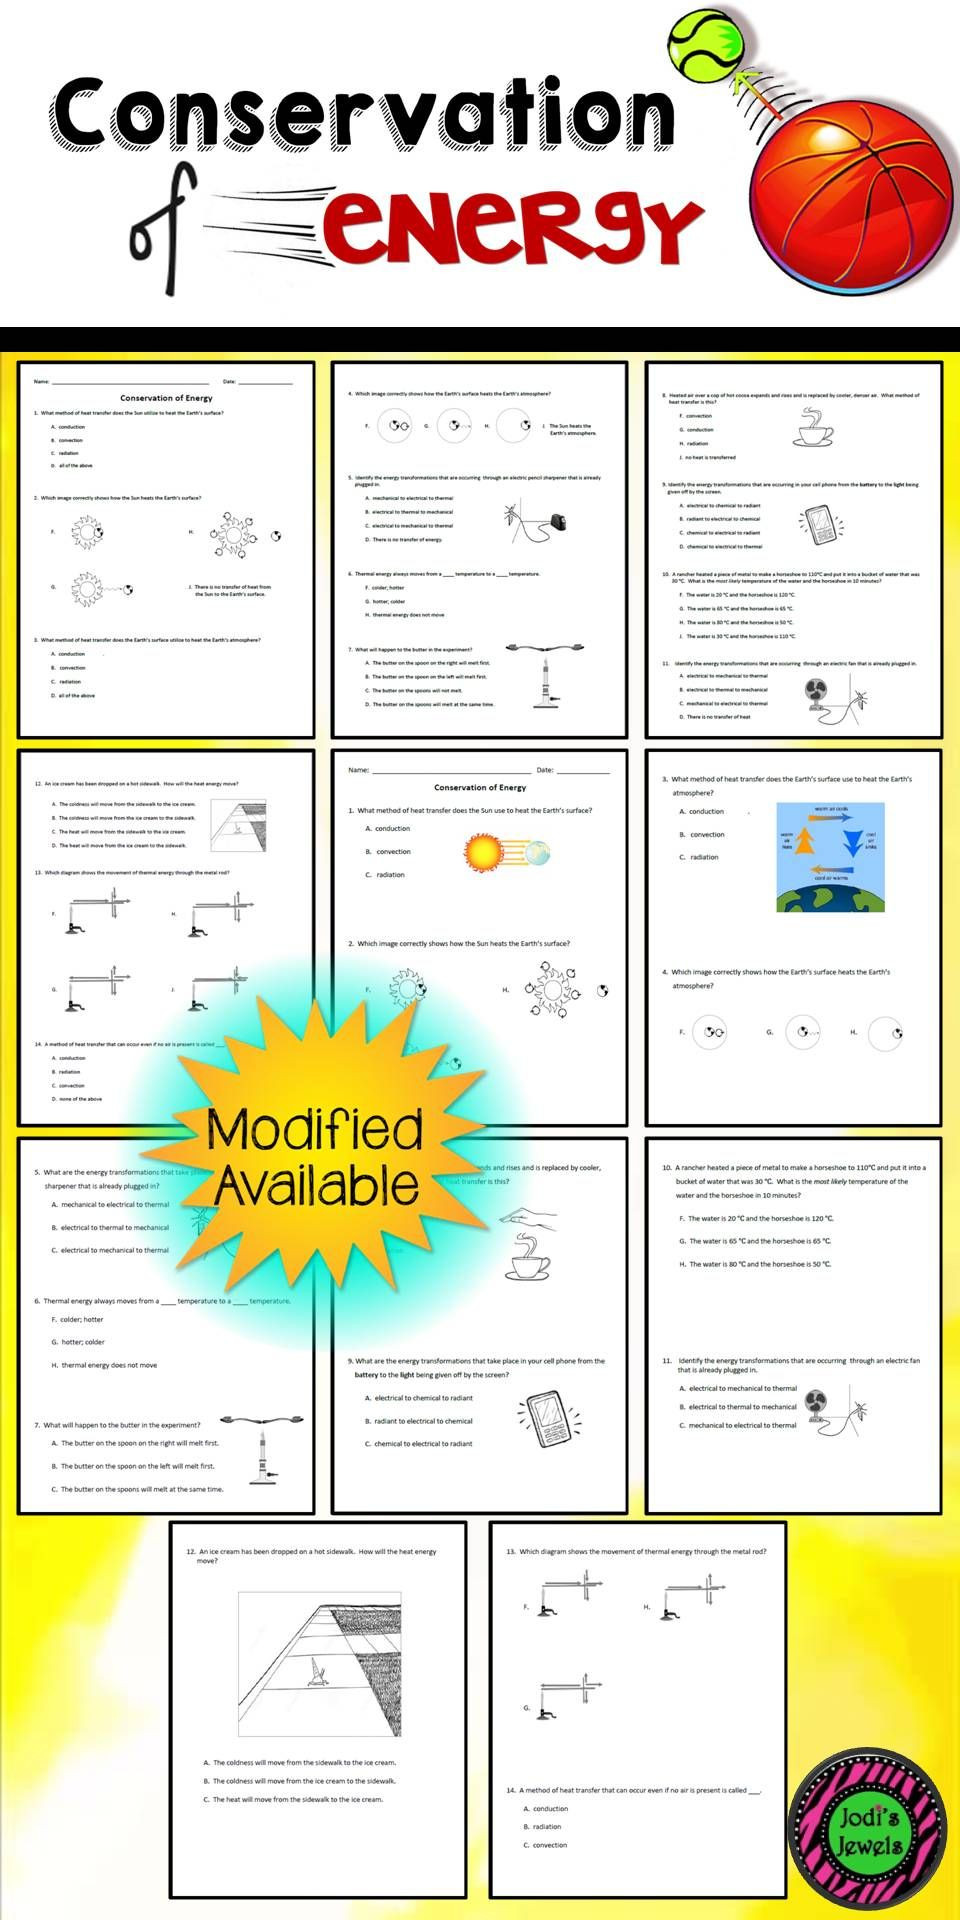 Conduction Convection Radiation Worksheet Created for An Introduction to the Conservation Of Energy